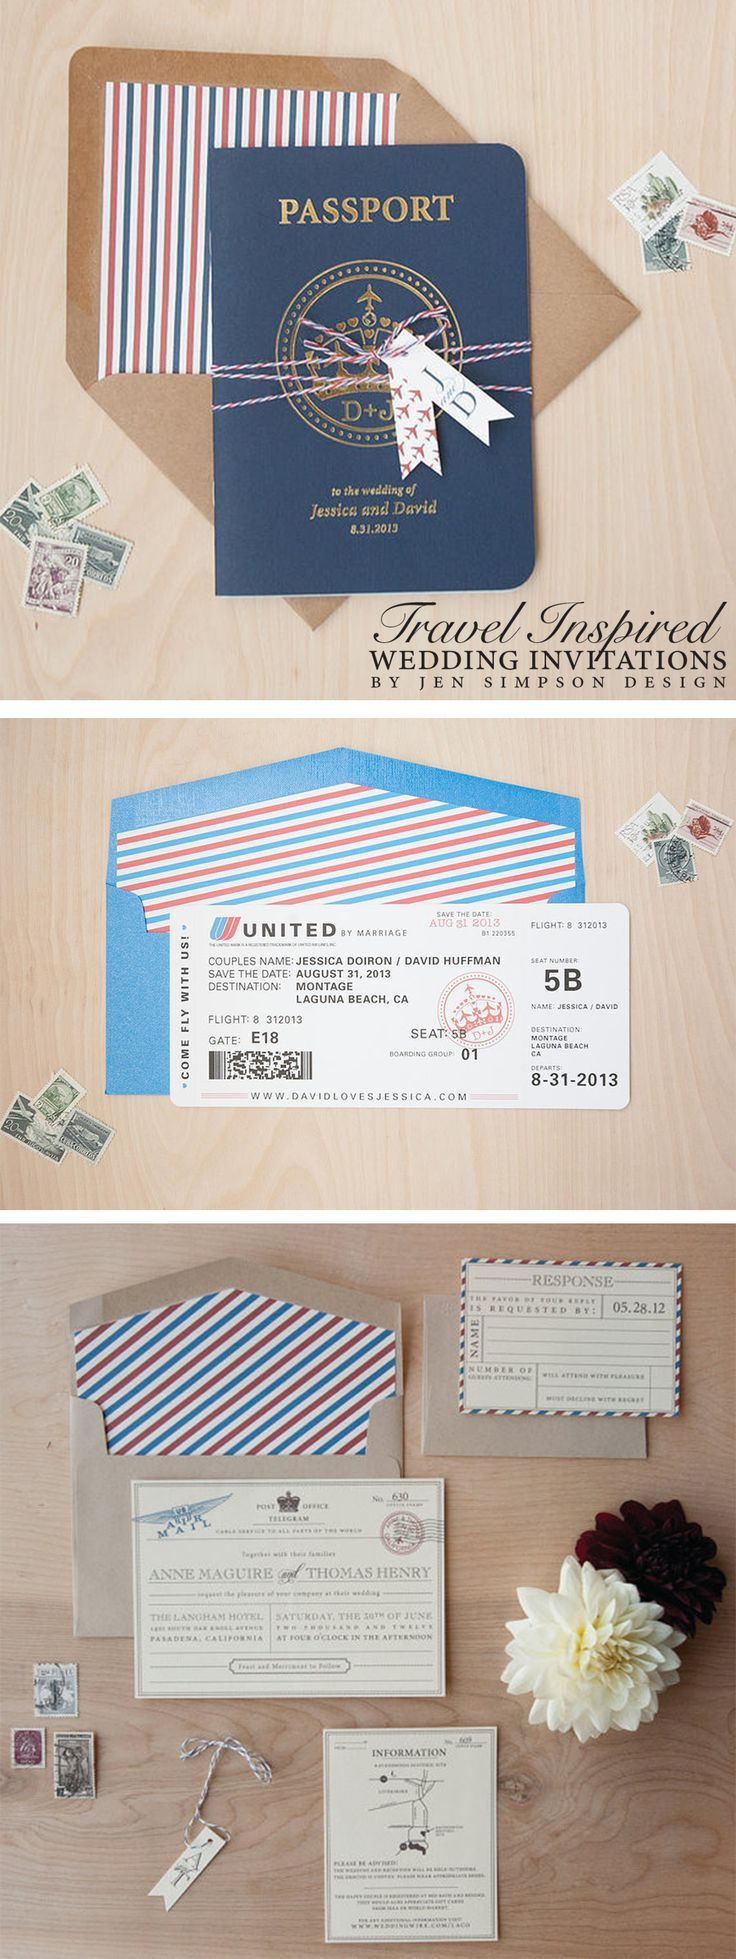 Travel inspired wedding invitations! Perfect for a destination ...